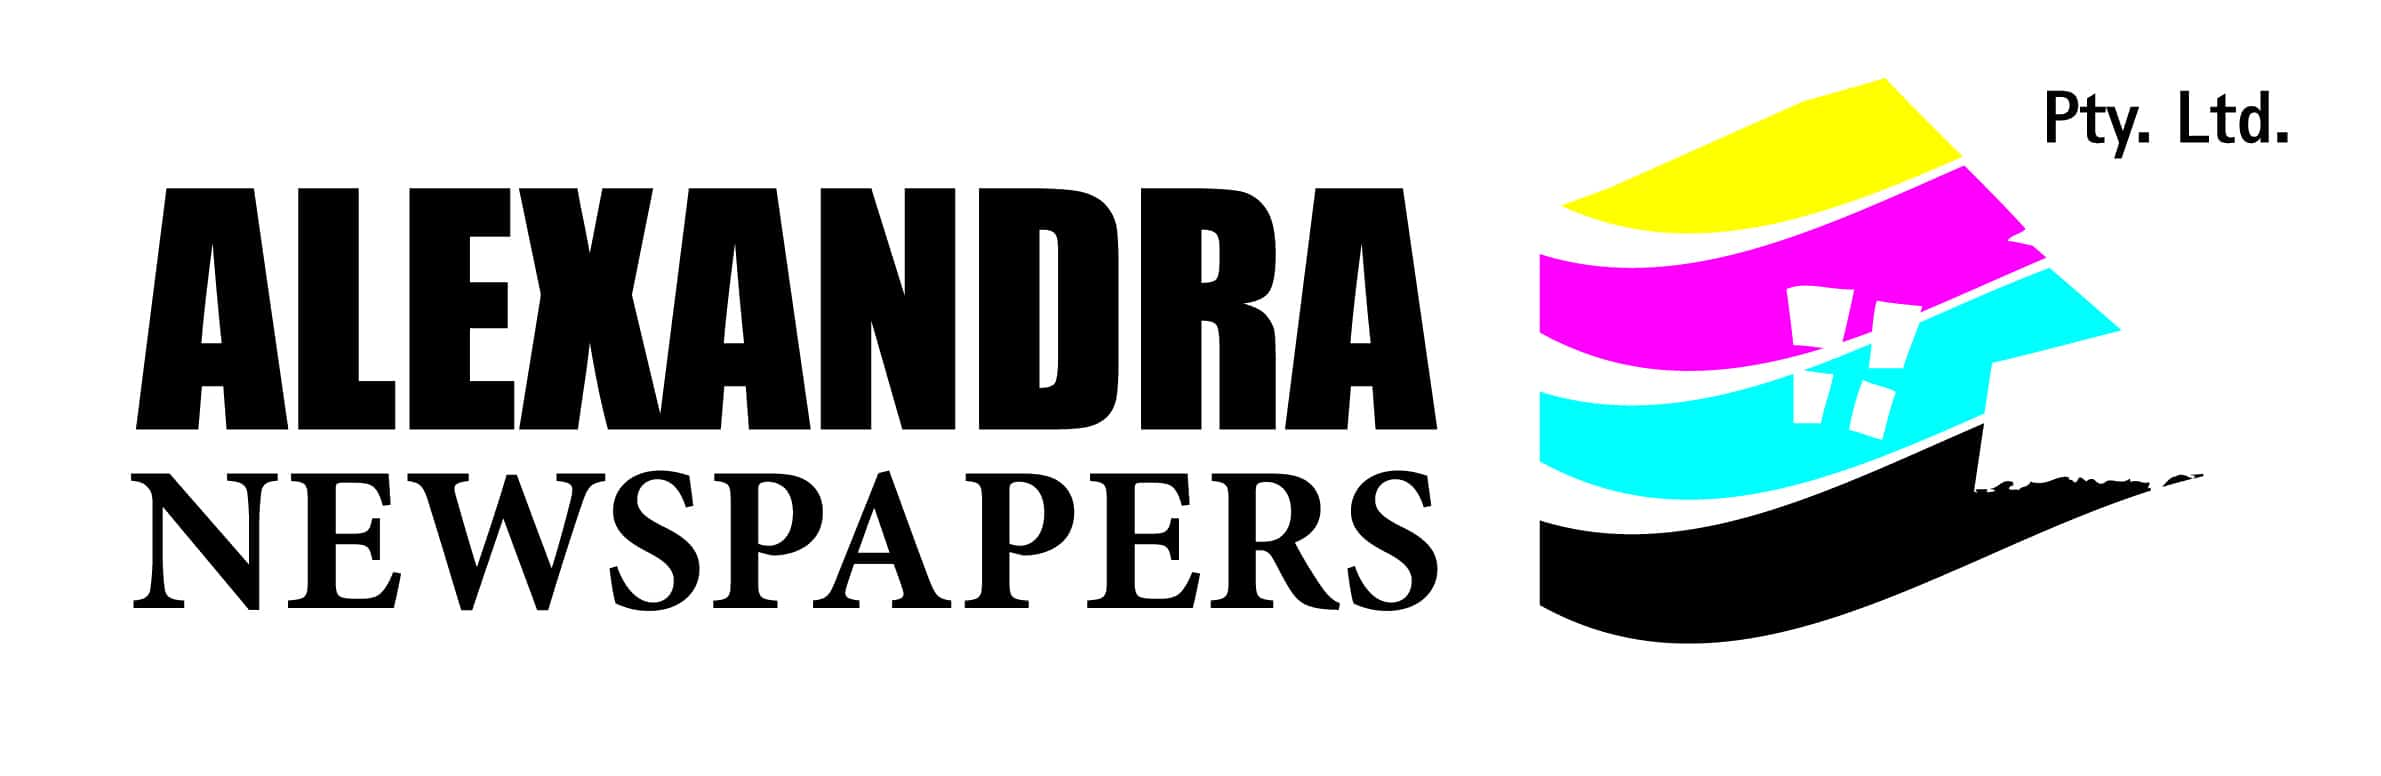 Alexandera Newspapers Logos